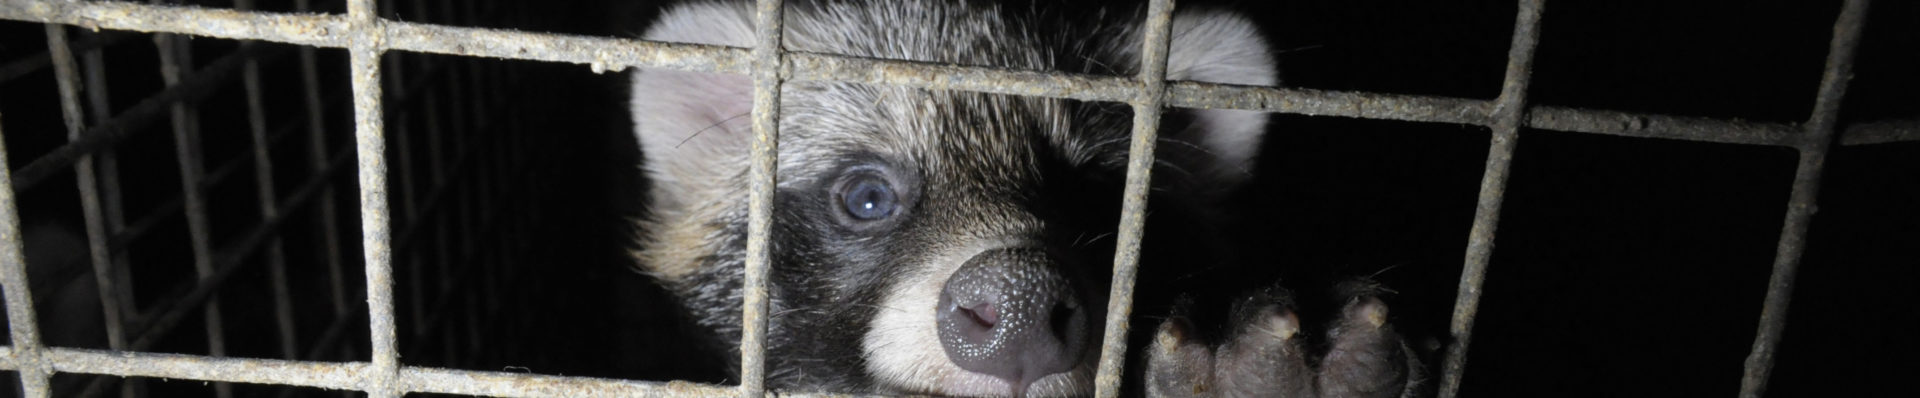 High level of violations revealed on Norwegian fur farms